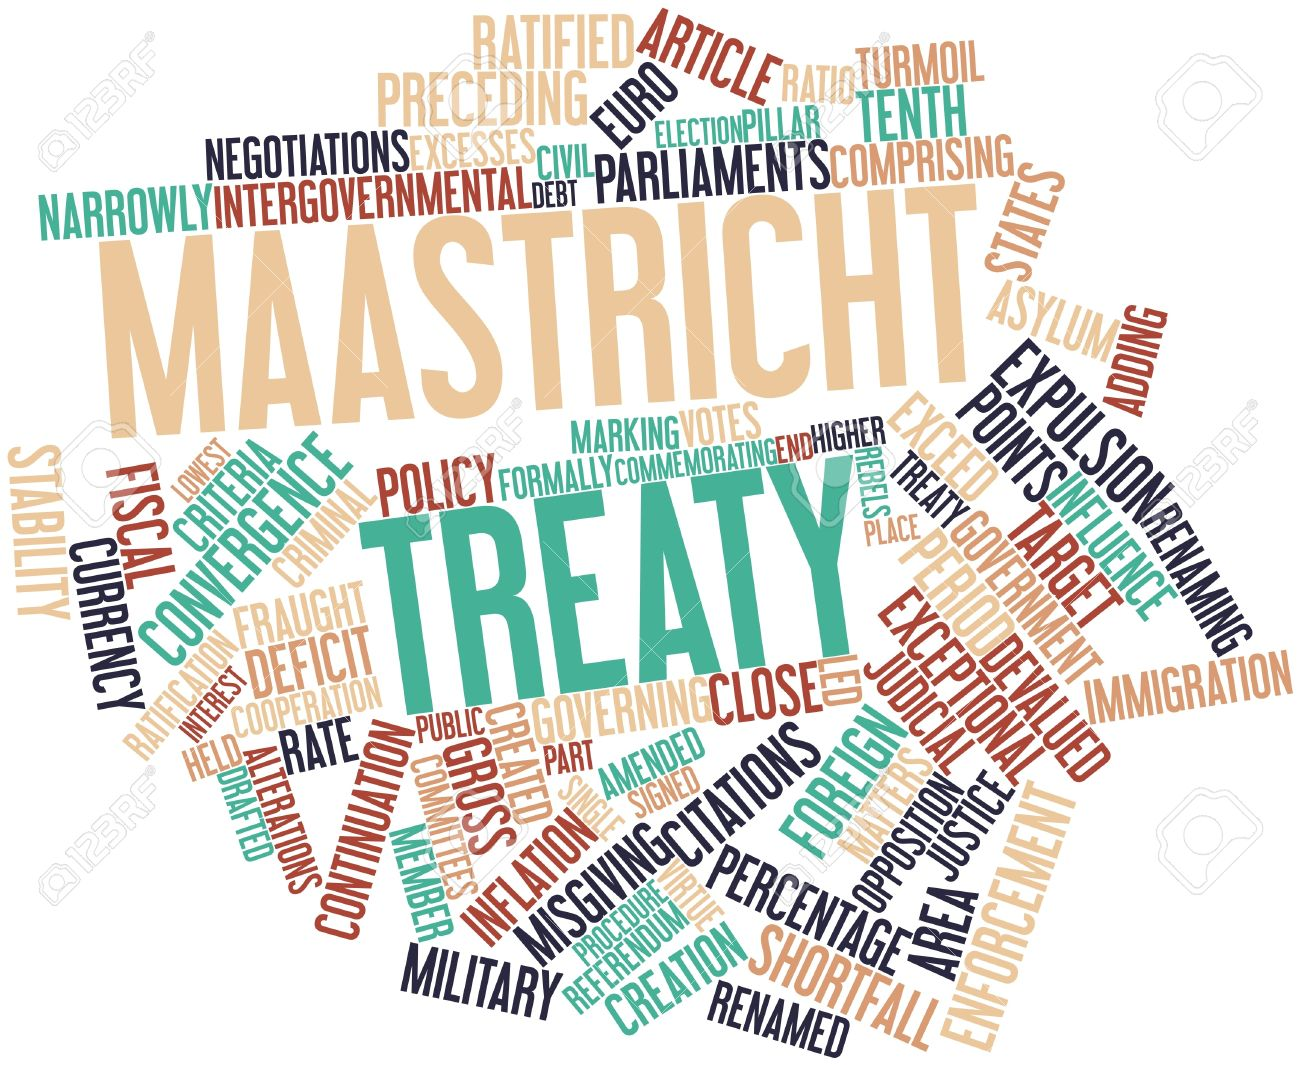 maastricht treaty Maastricht is officially known as the treaty of the european union and with it the eu came into existence for the first time by adding two new areas - justice and home affairs and a common foreign and security policy - to the existing european community, the so-called three pillars of the union were established.